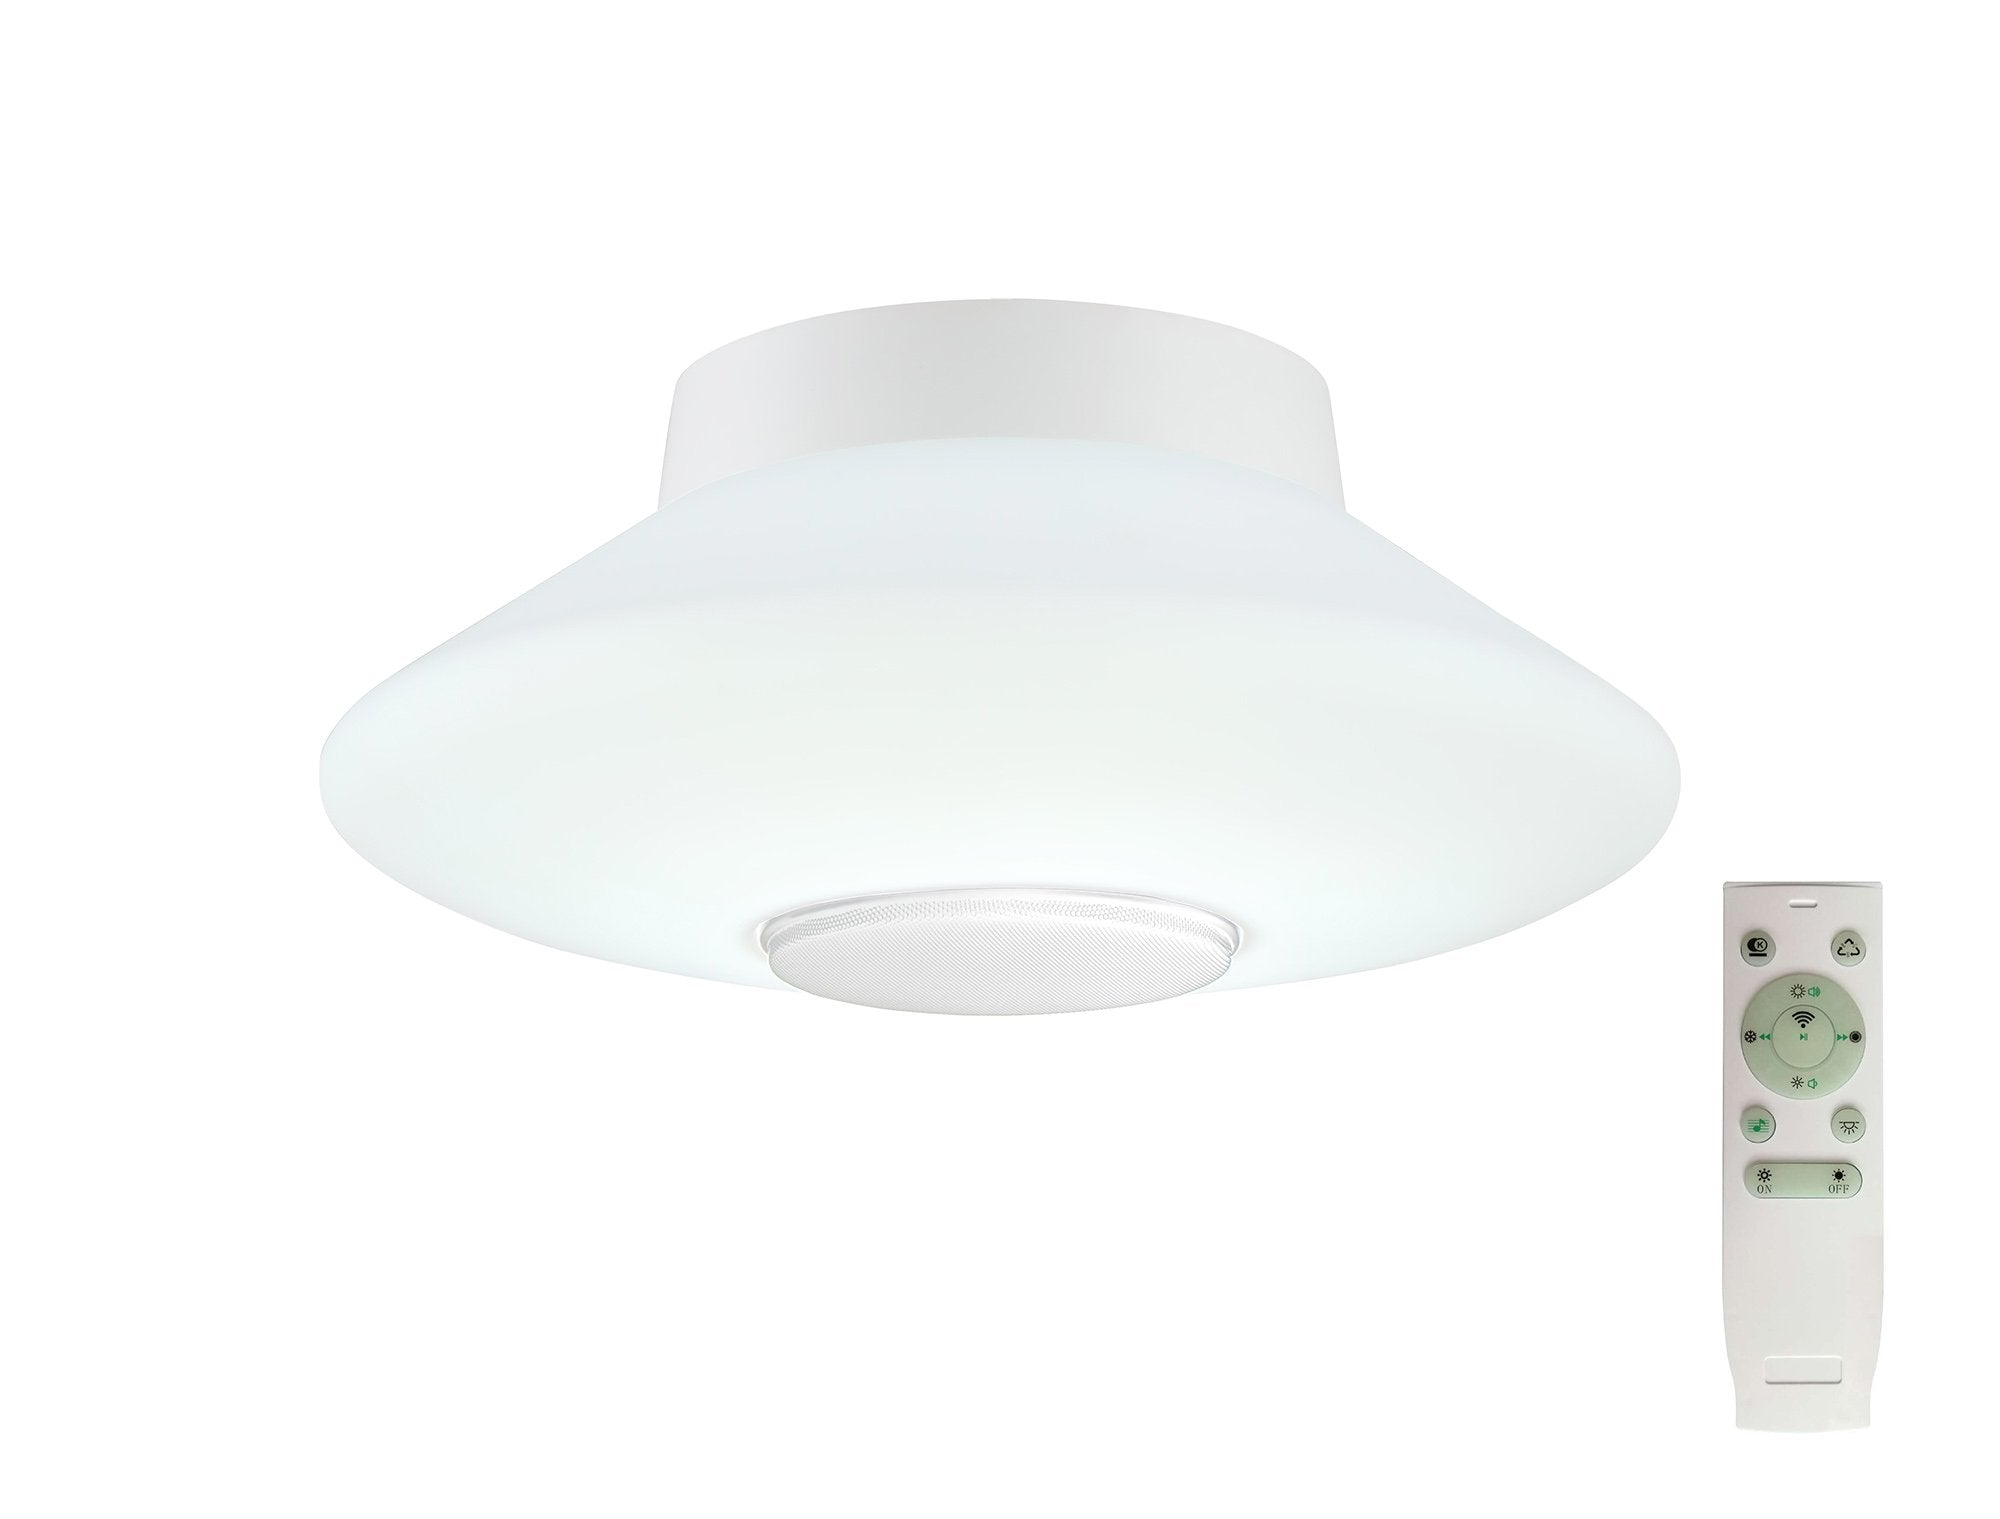 ROSWELL Flat Ceiling, RGB/Tuneable White Remote Control/App Control With Built In Spea